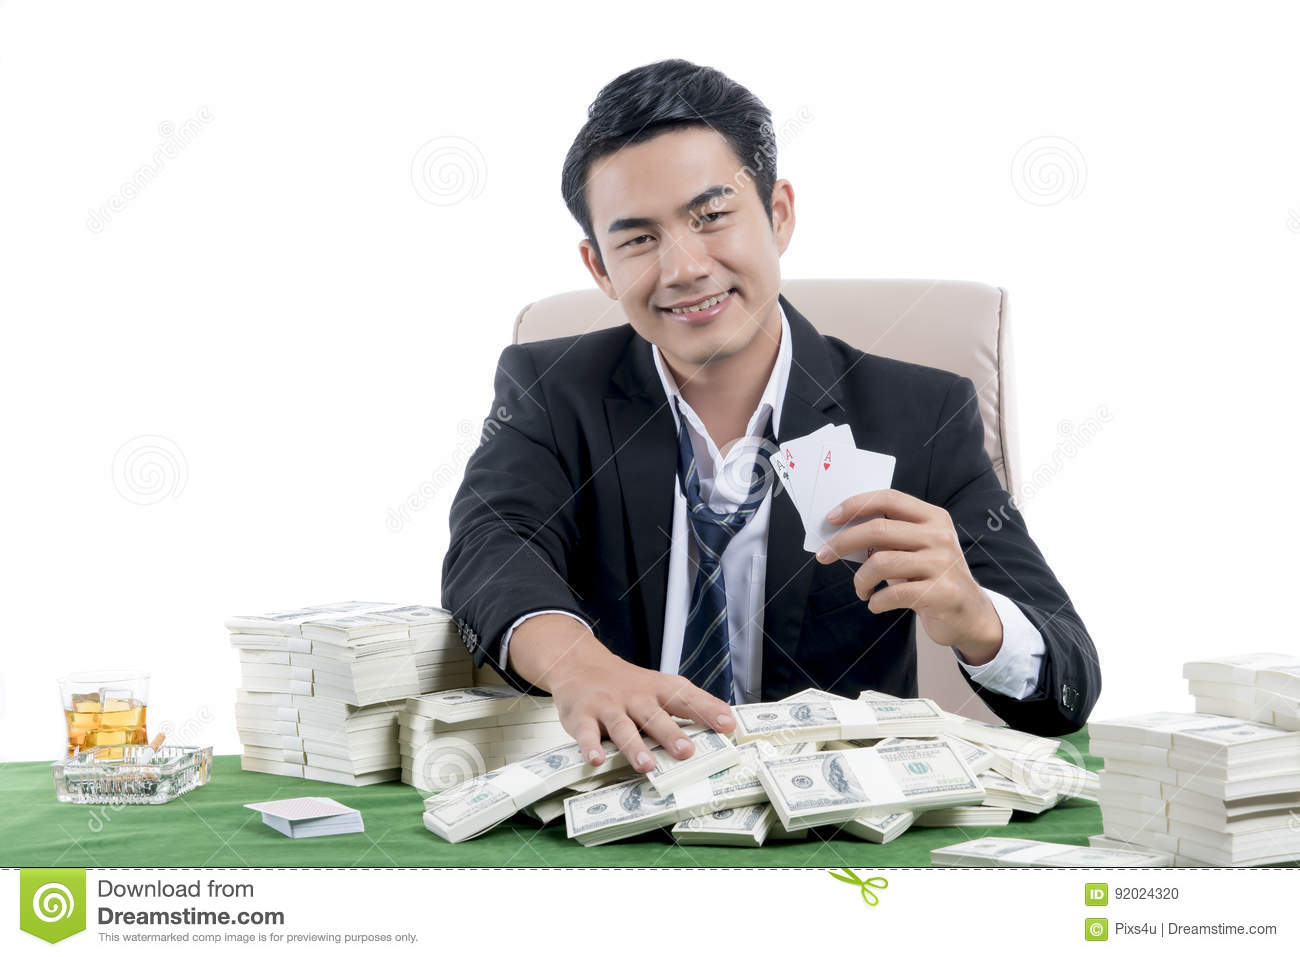 The young poker player winning and holding set of aces